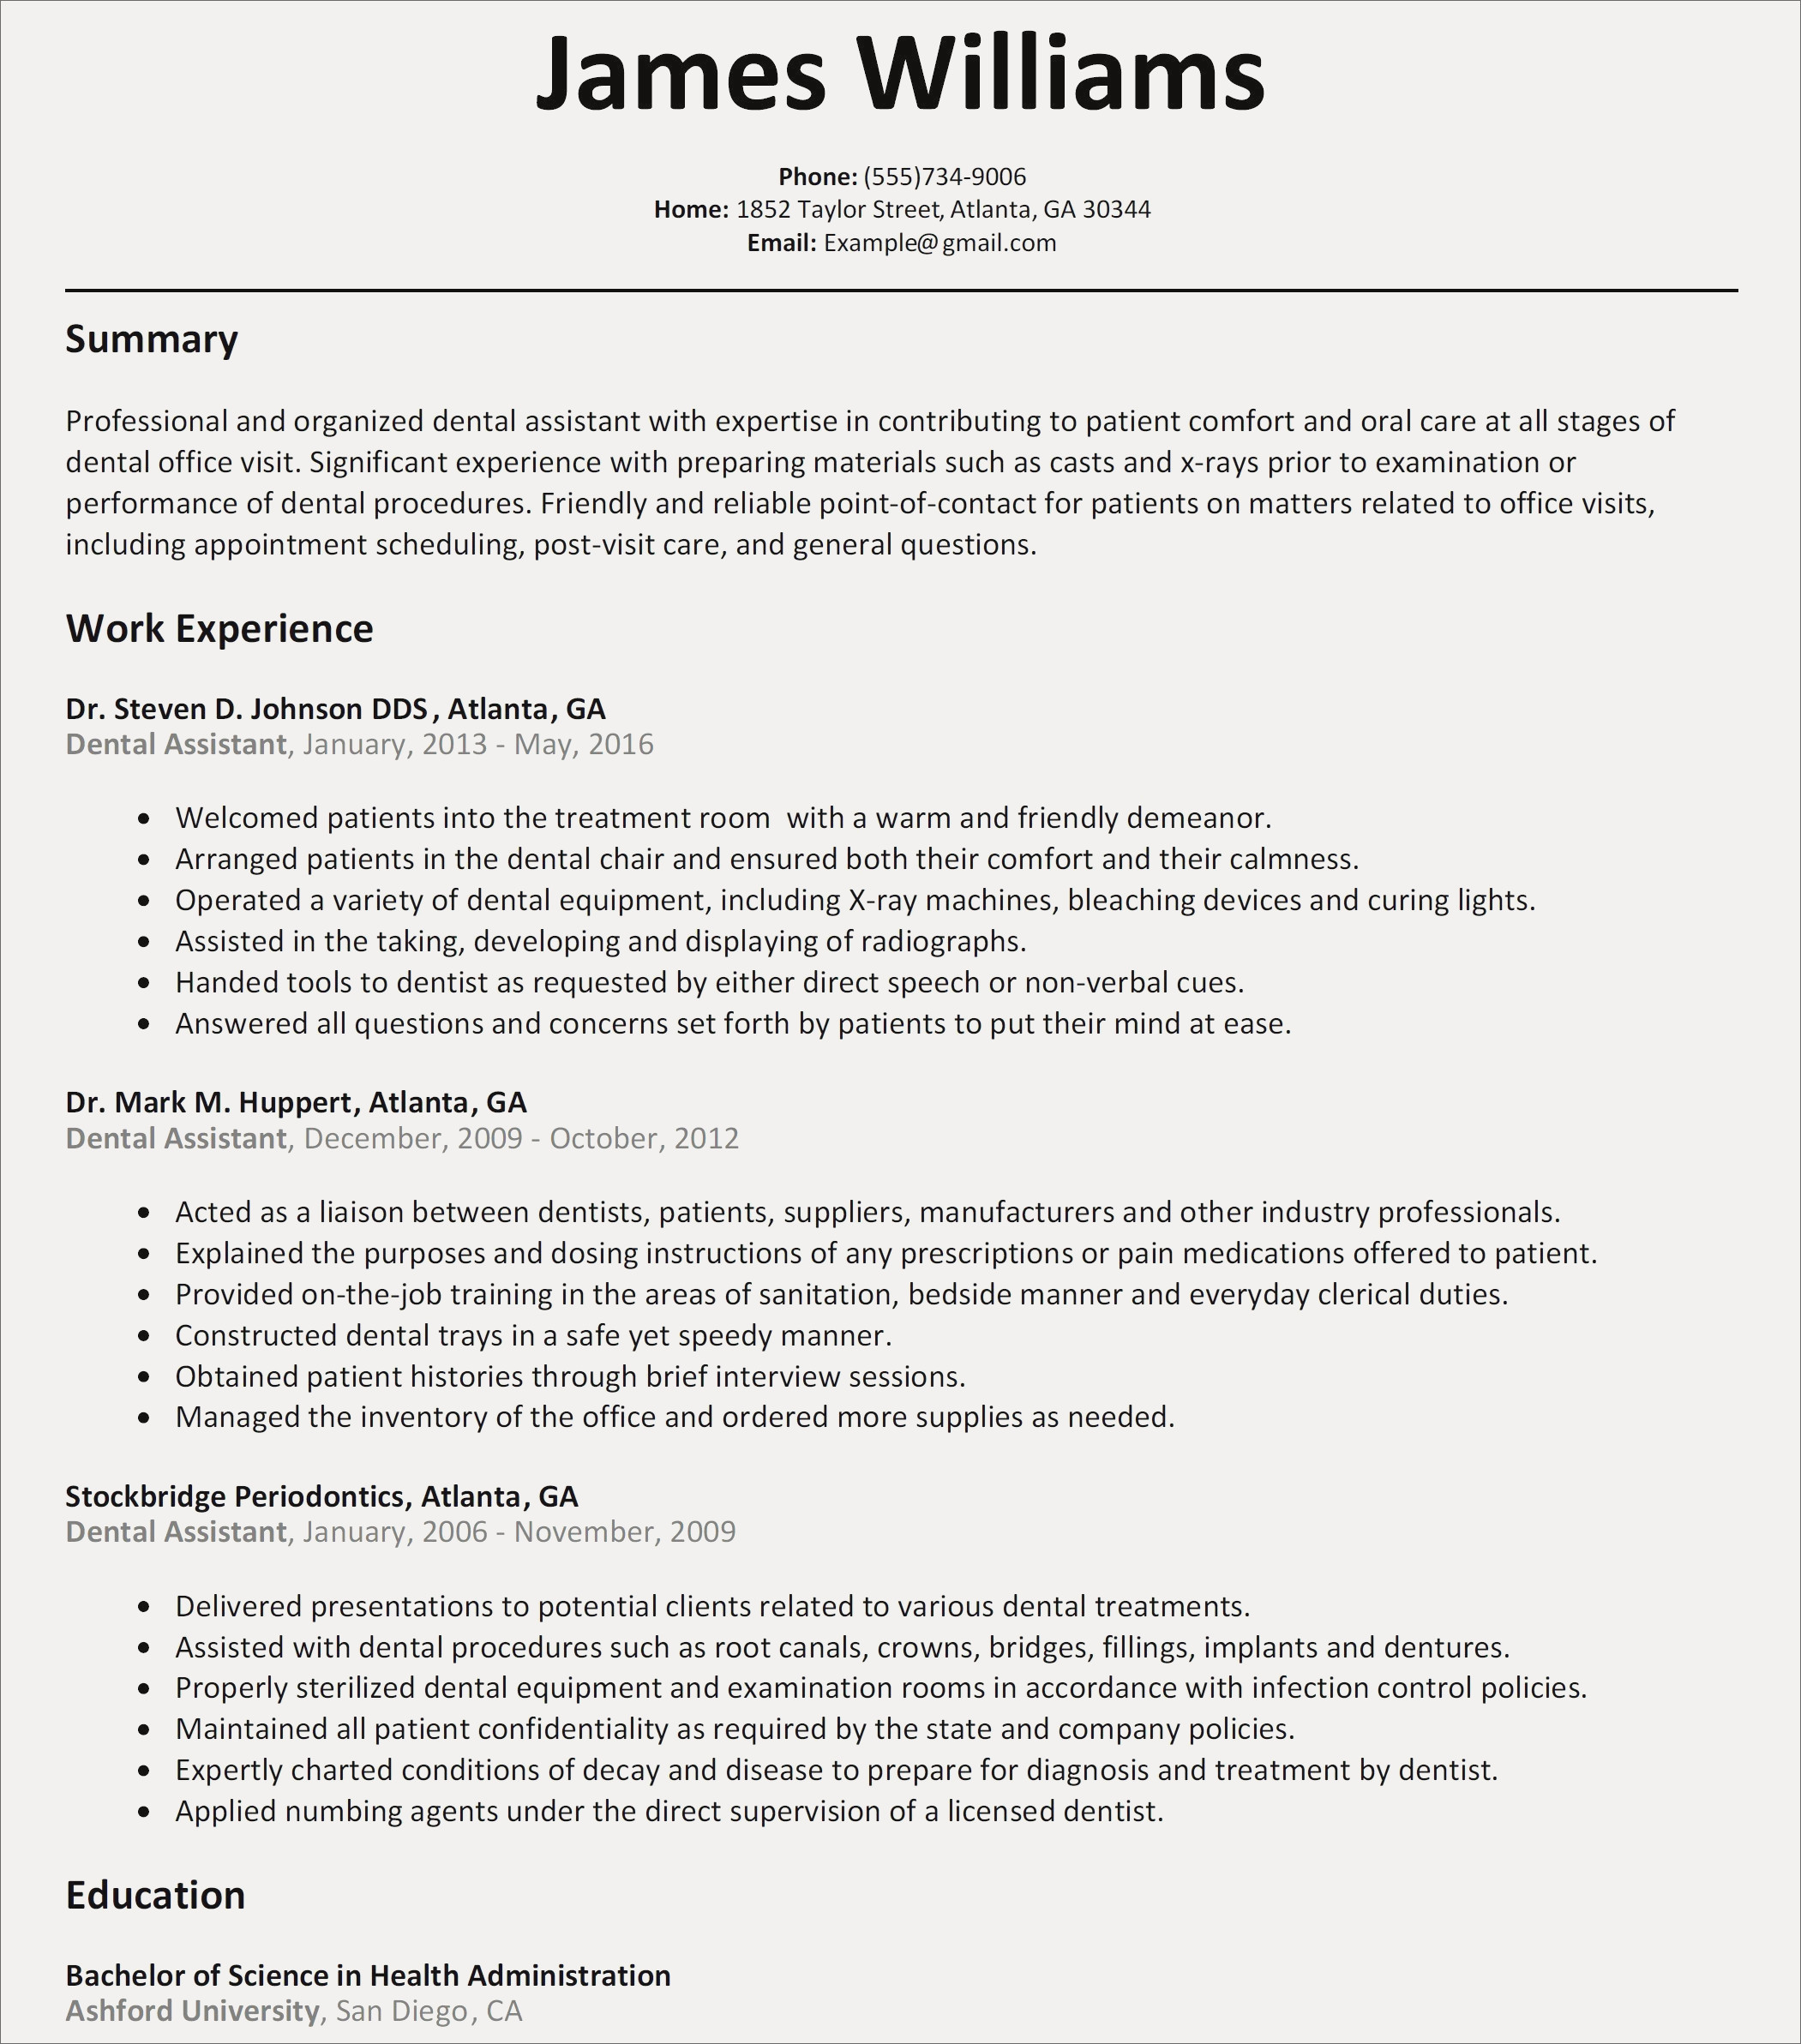 Resume Email Address - How to Make A Resume Cove Best How to Write A Cover Letter for